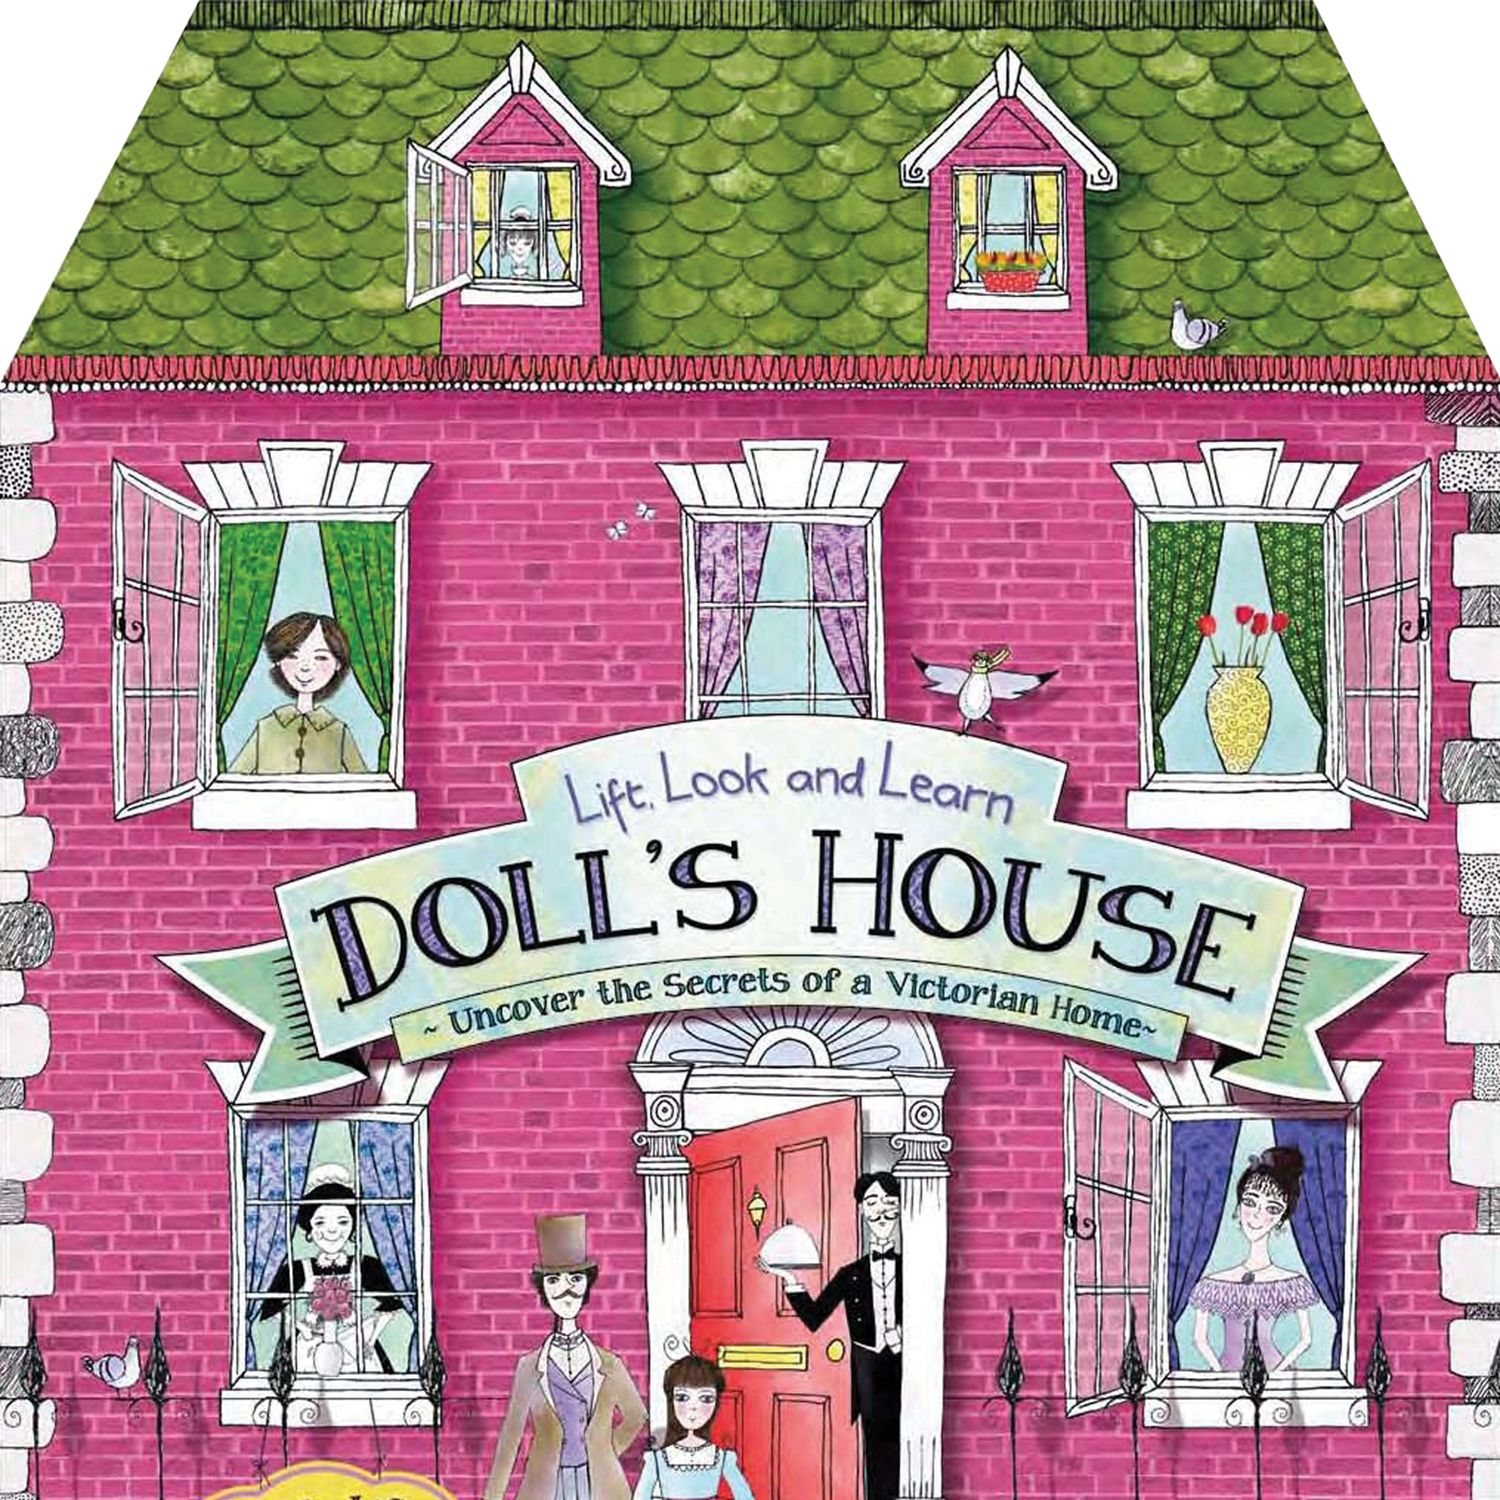 Lift, Look Learn Doll's House Book